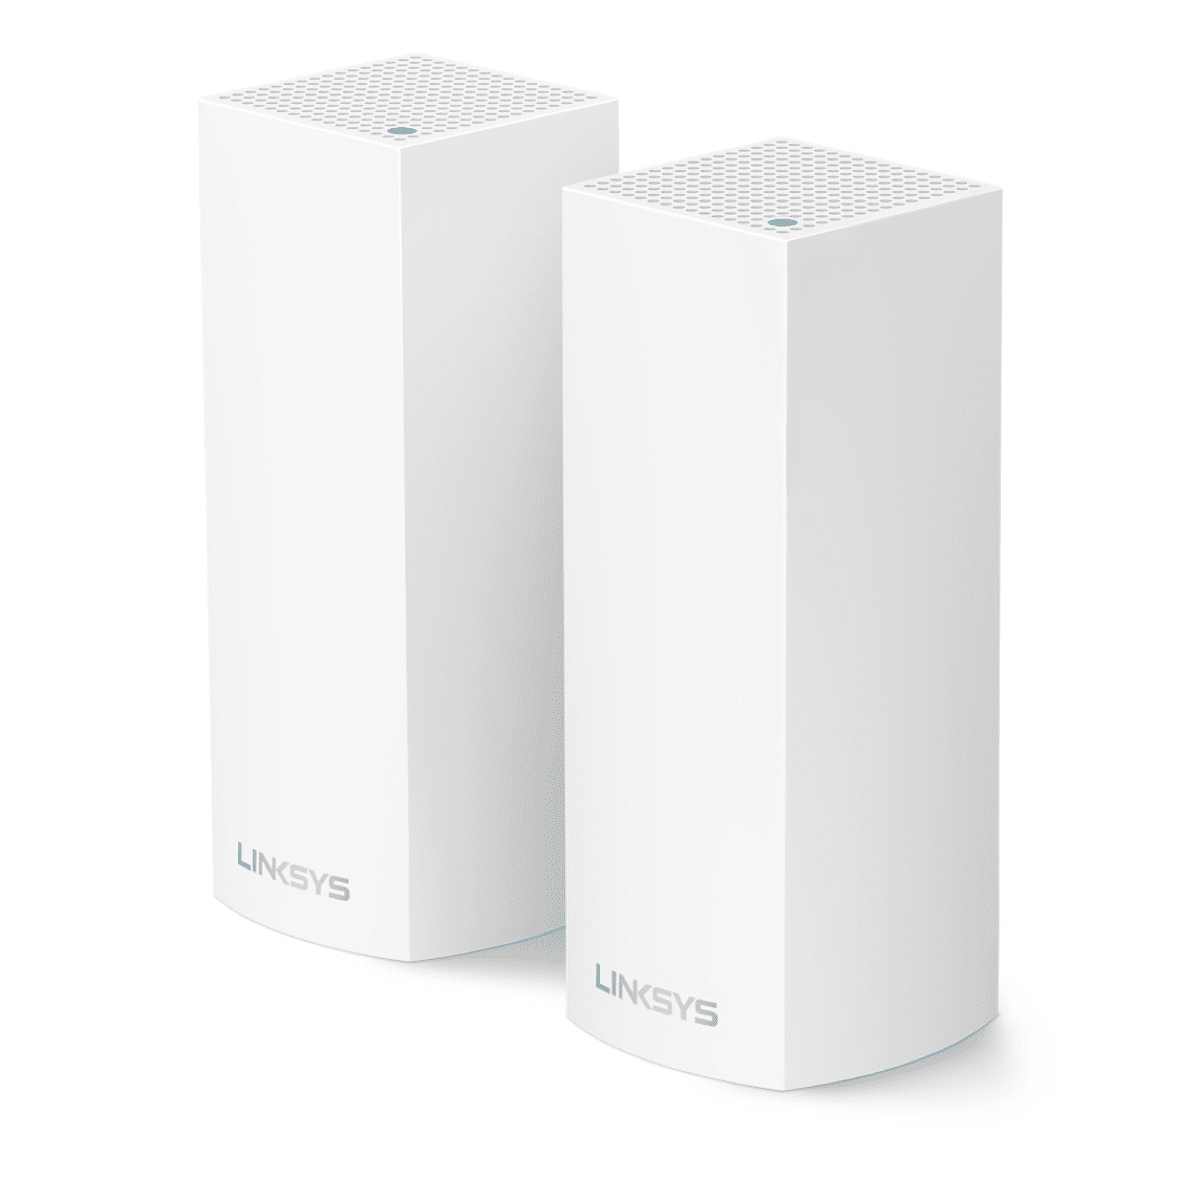 Image of two Linksys Velop mesh routers.